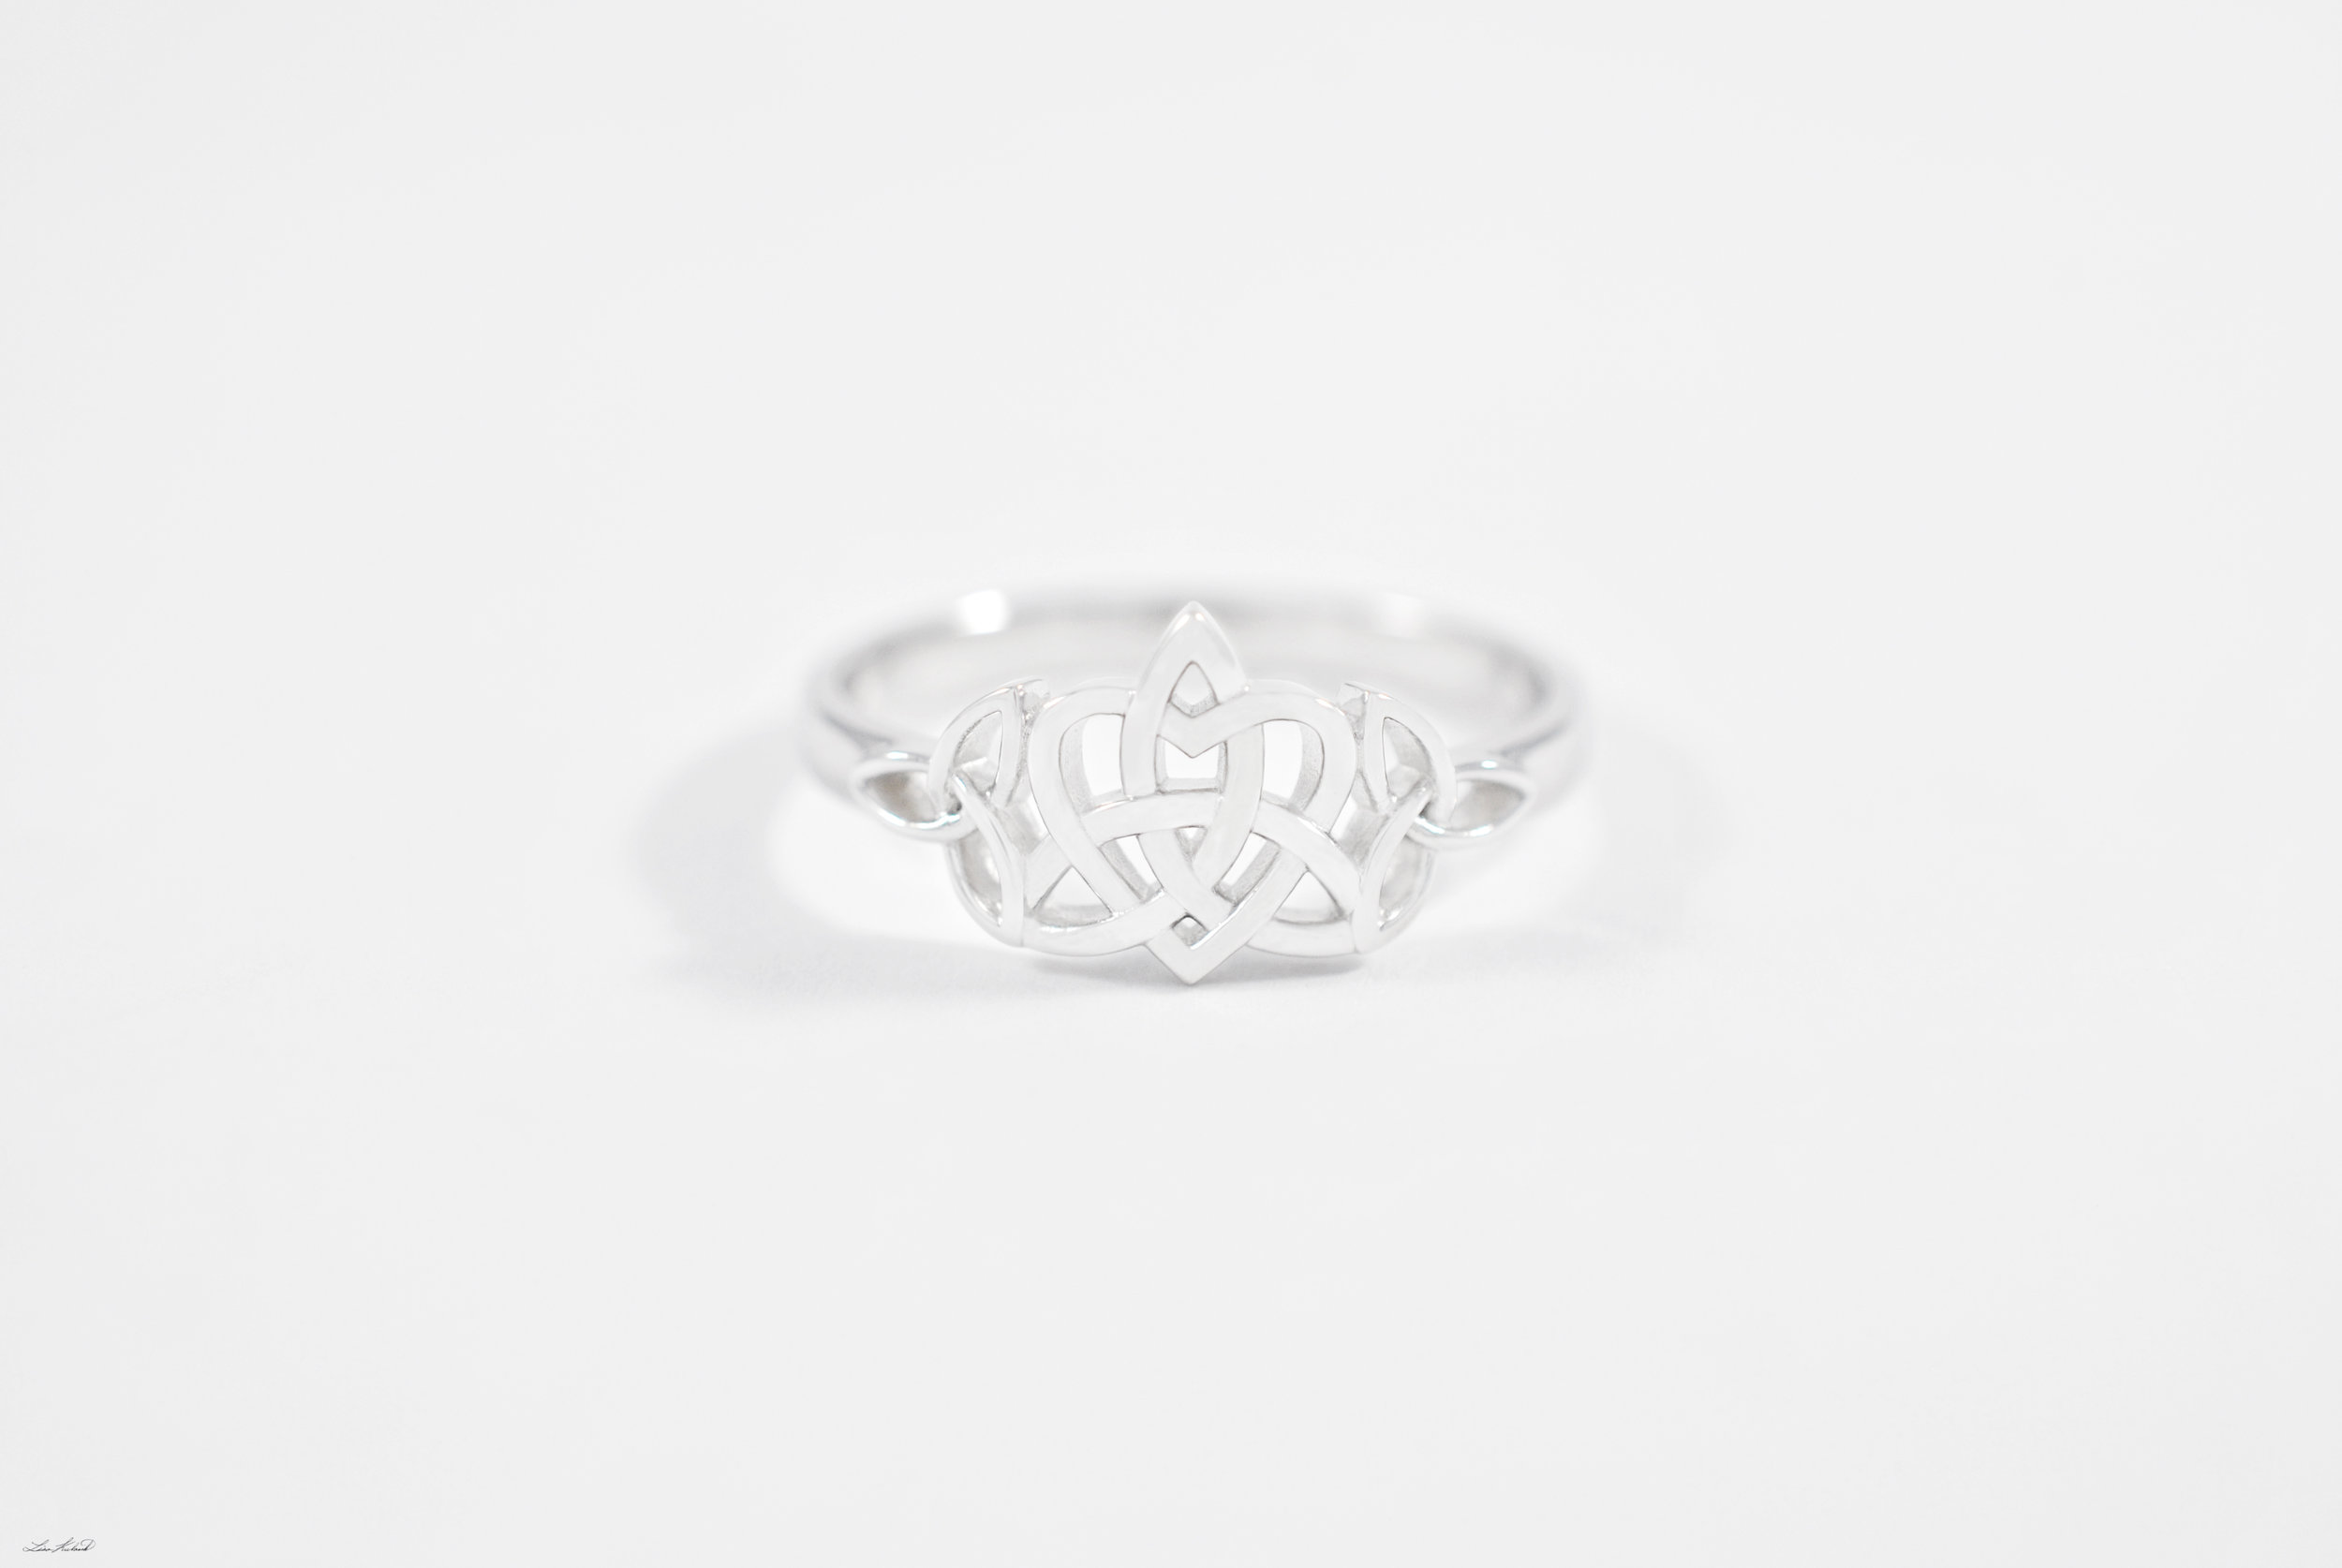 Deb's celtic knot ring_1.jpg